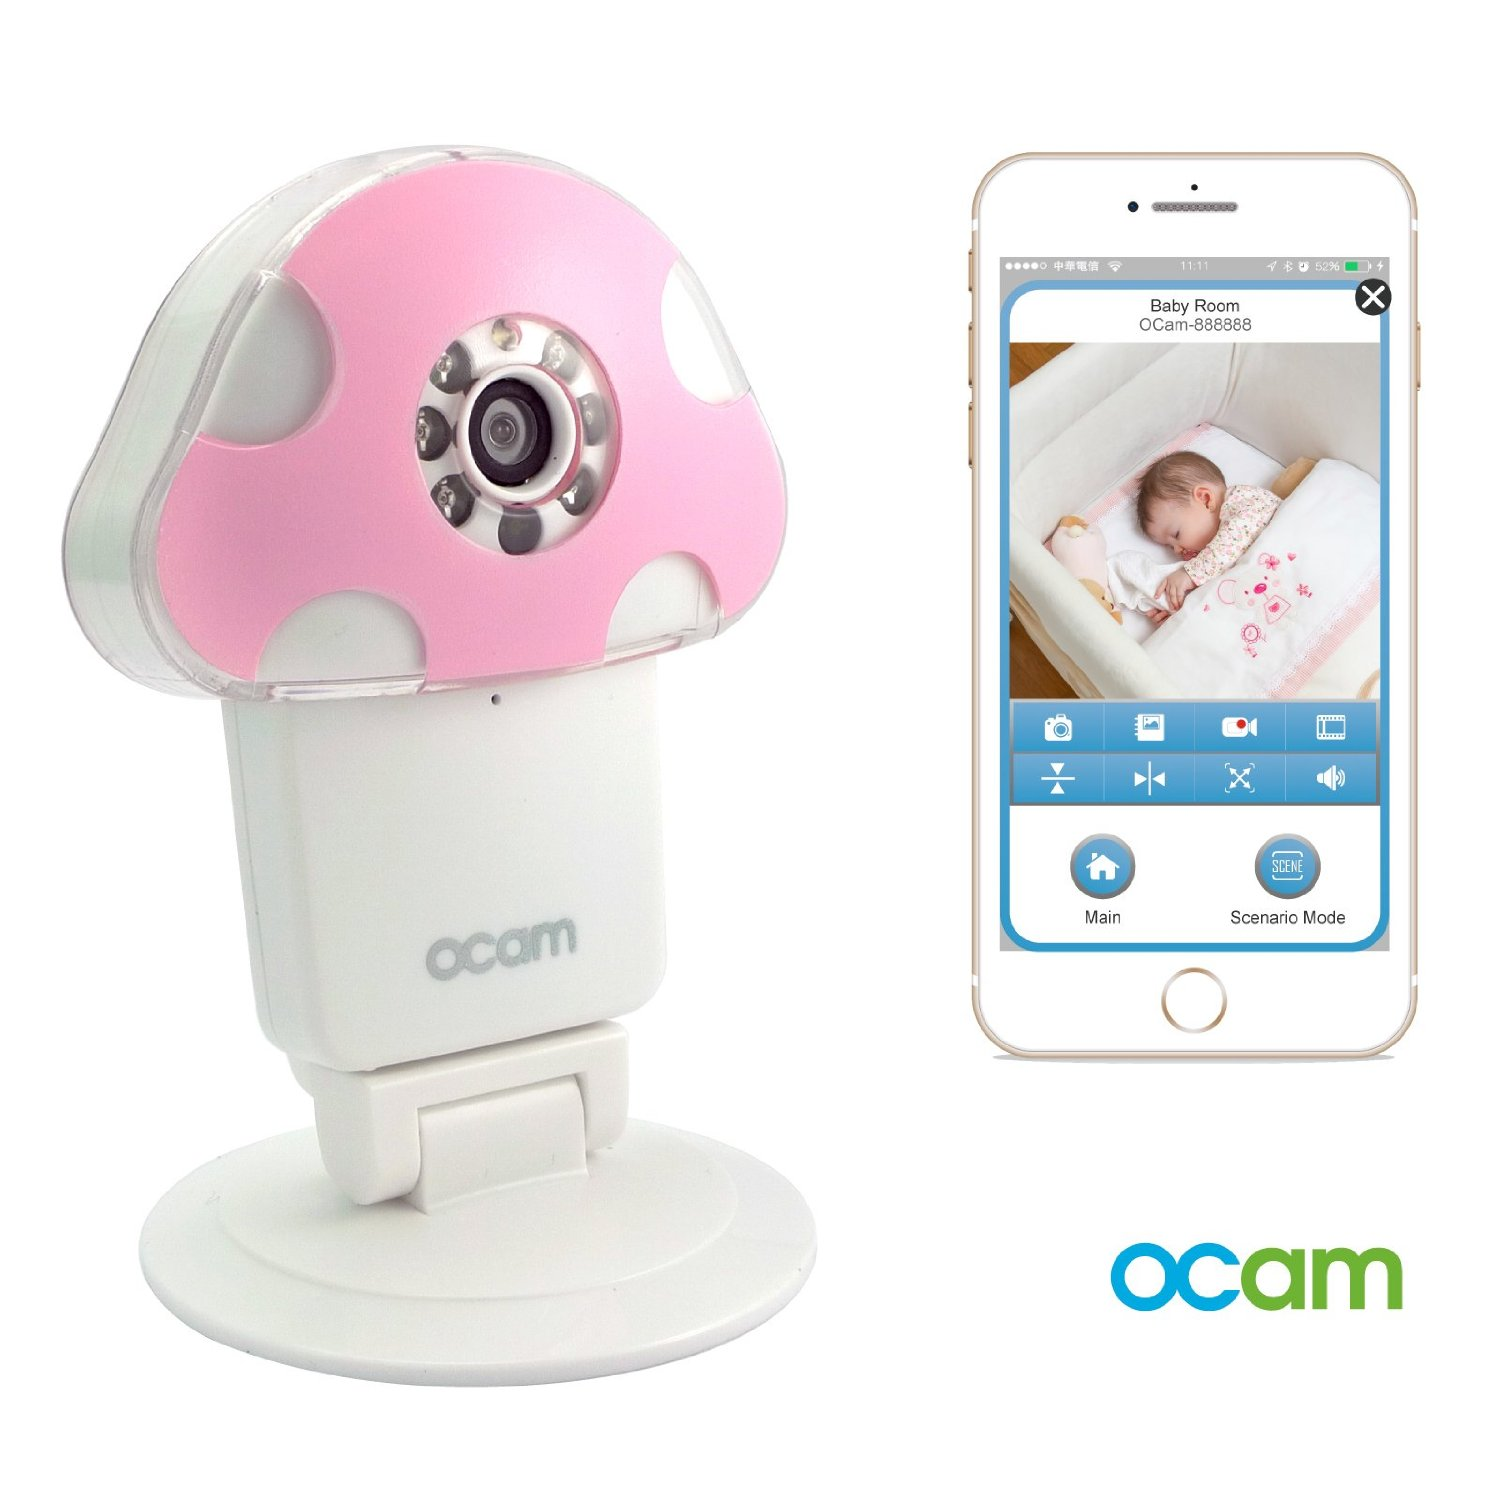 compare leapfrog leapband vs ocam m1 wireless baby monitor vs vtech dm111 b. Black Bedroom Furniture Sets. Home Design Ideas